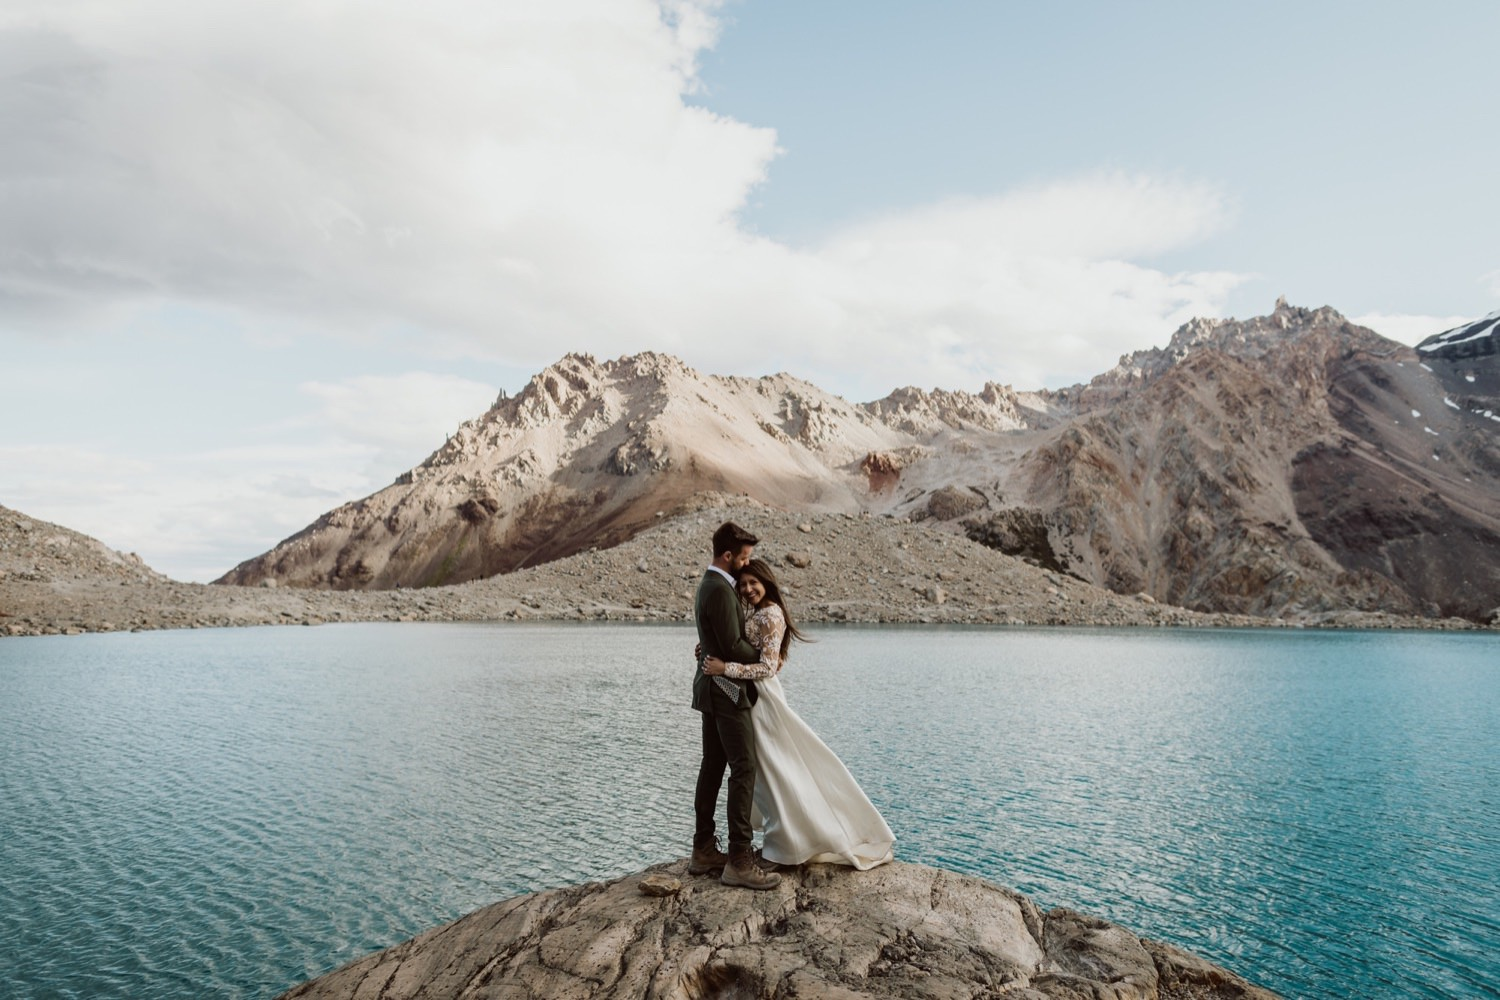 patagonia-argentina-adventure-wedding-session-21.jpg